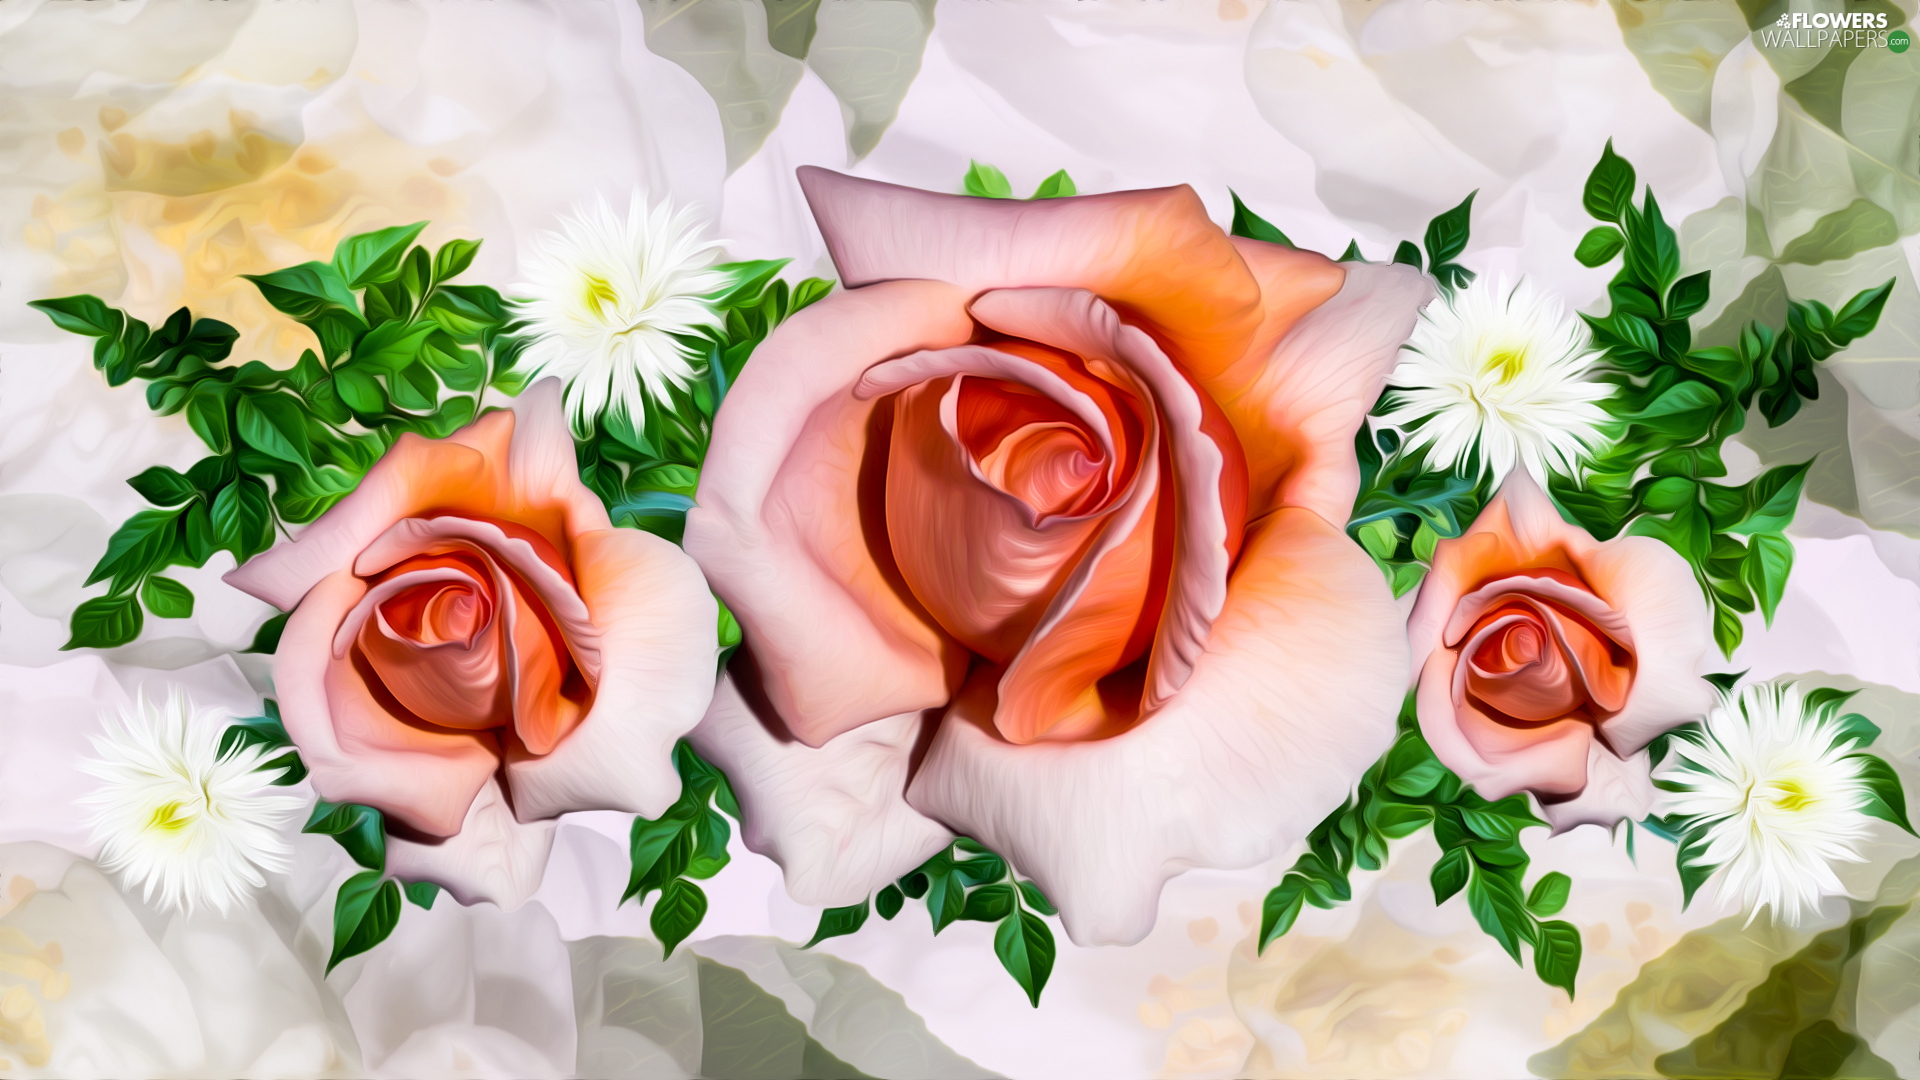 Flowers, roses, graphics, Three